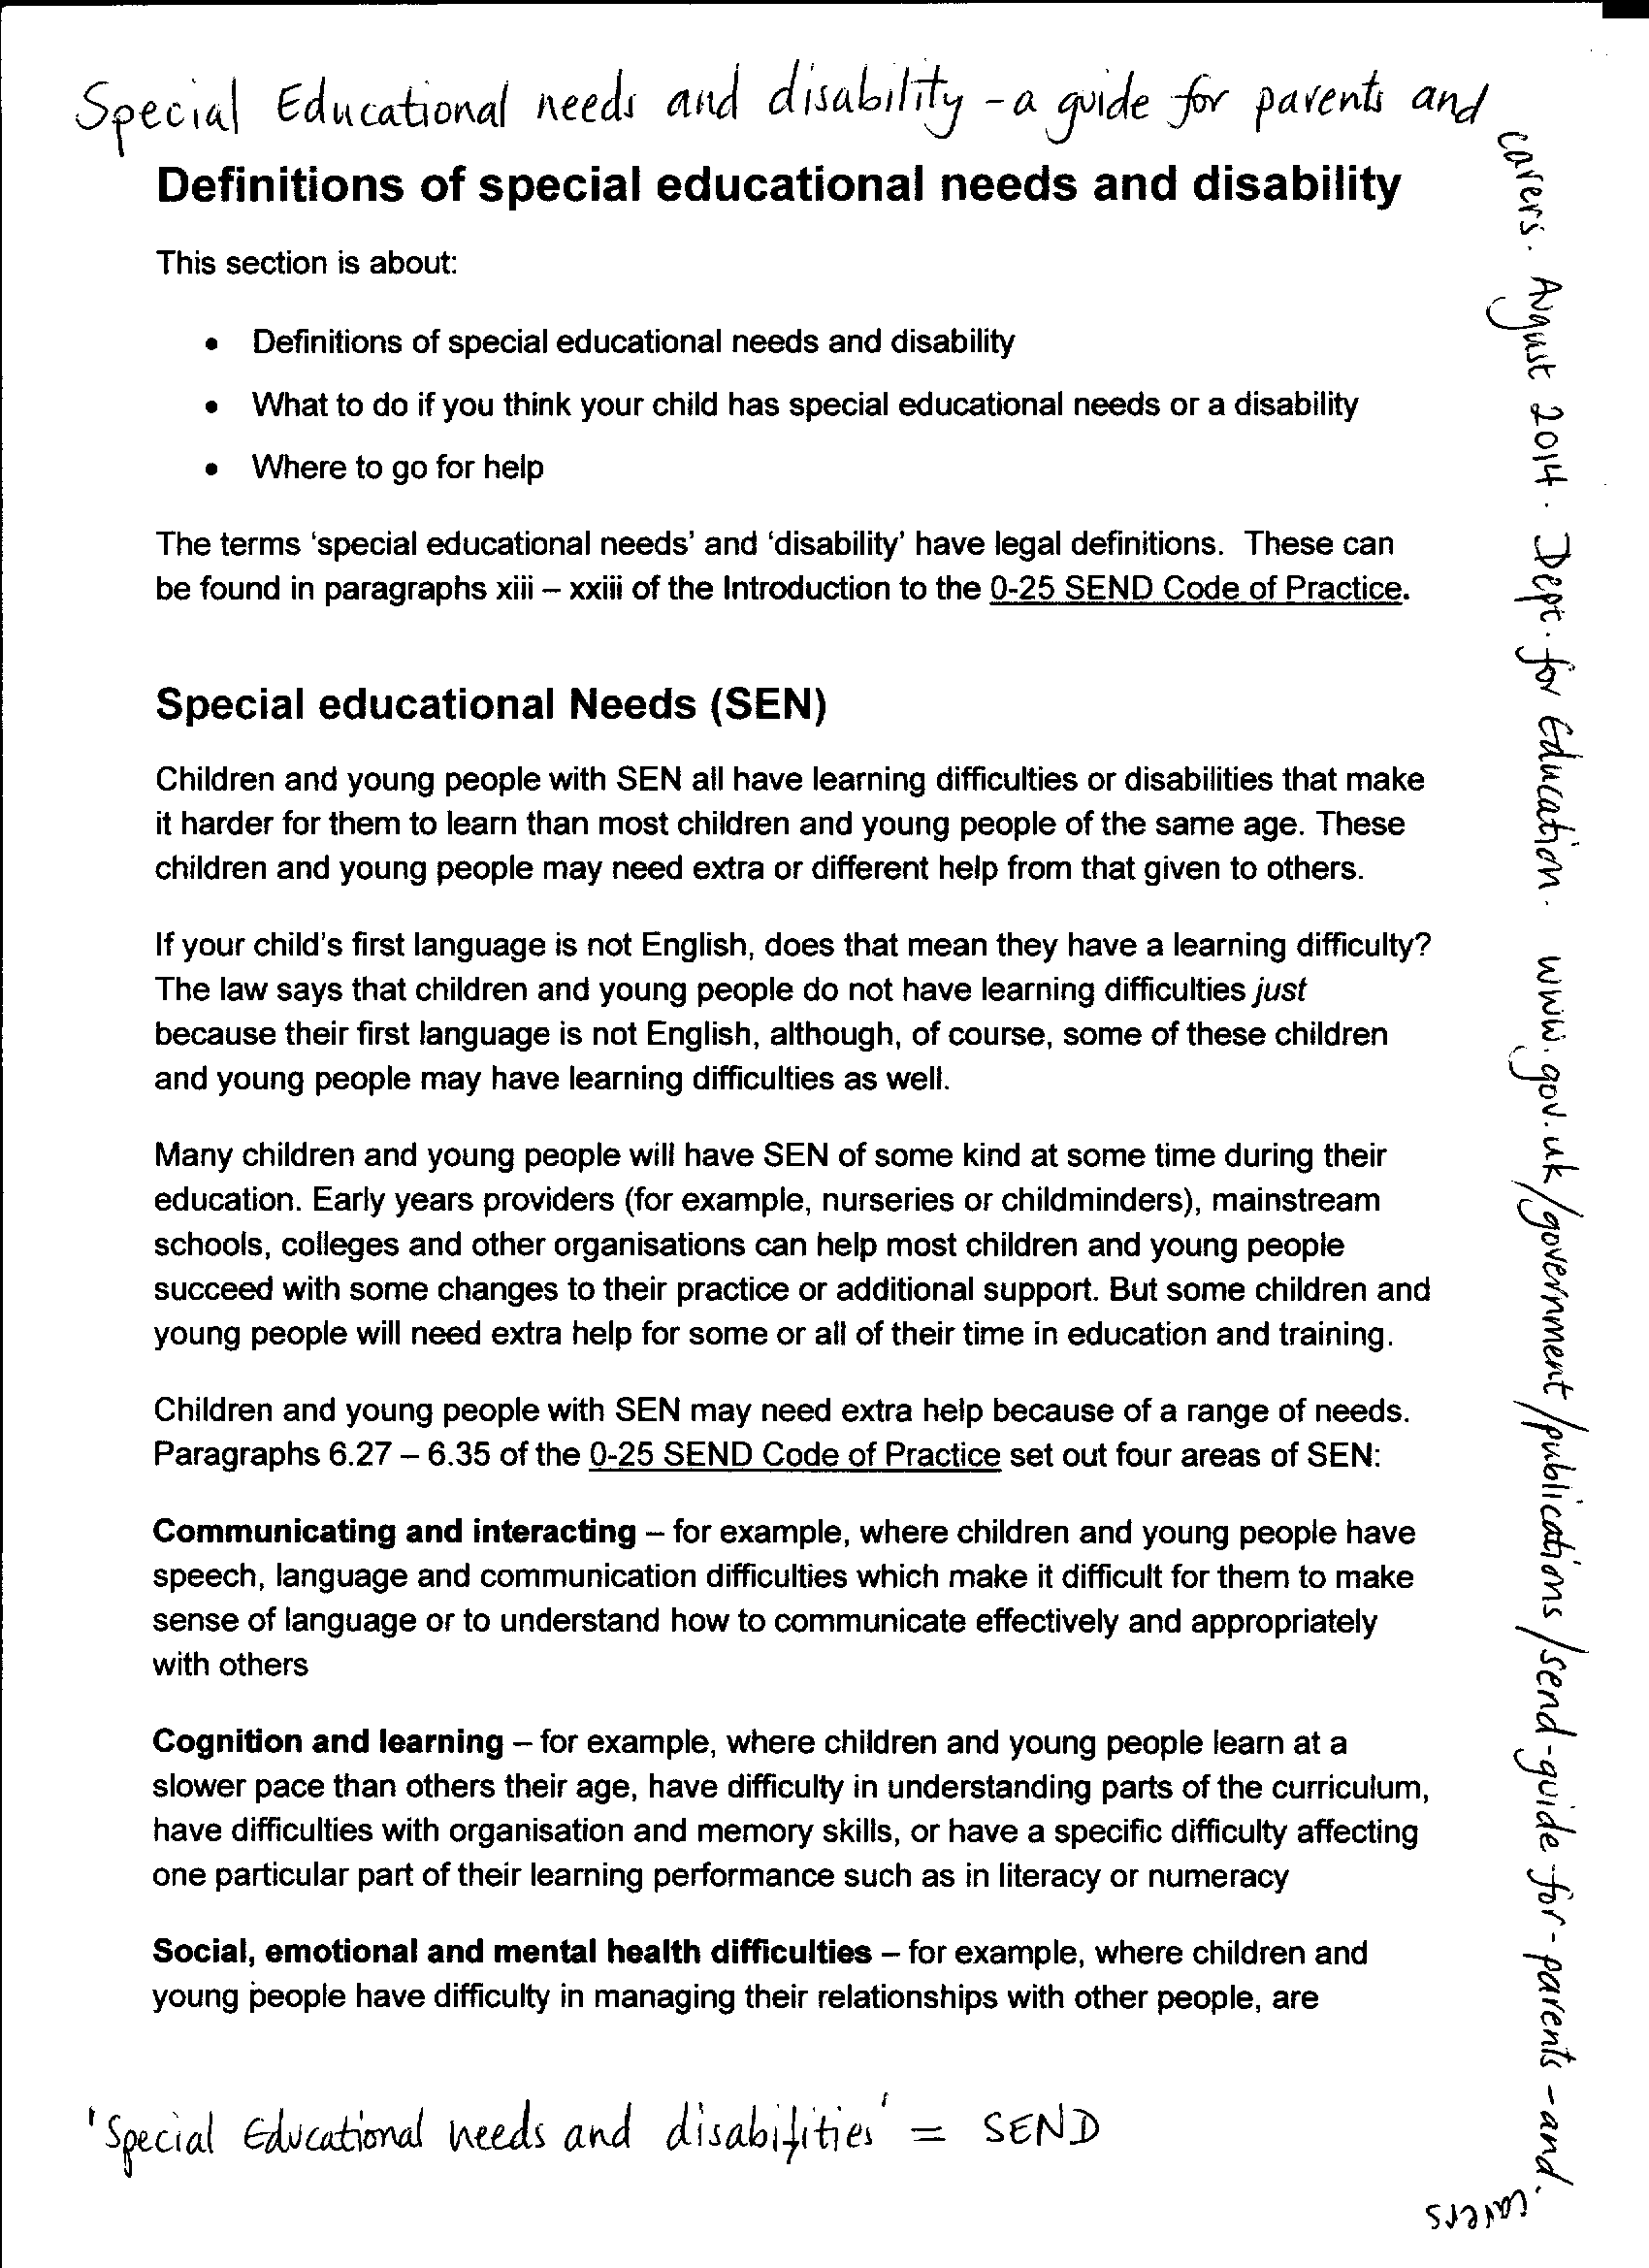 page 1 sen doc (extract)